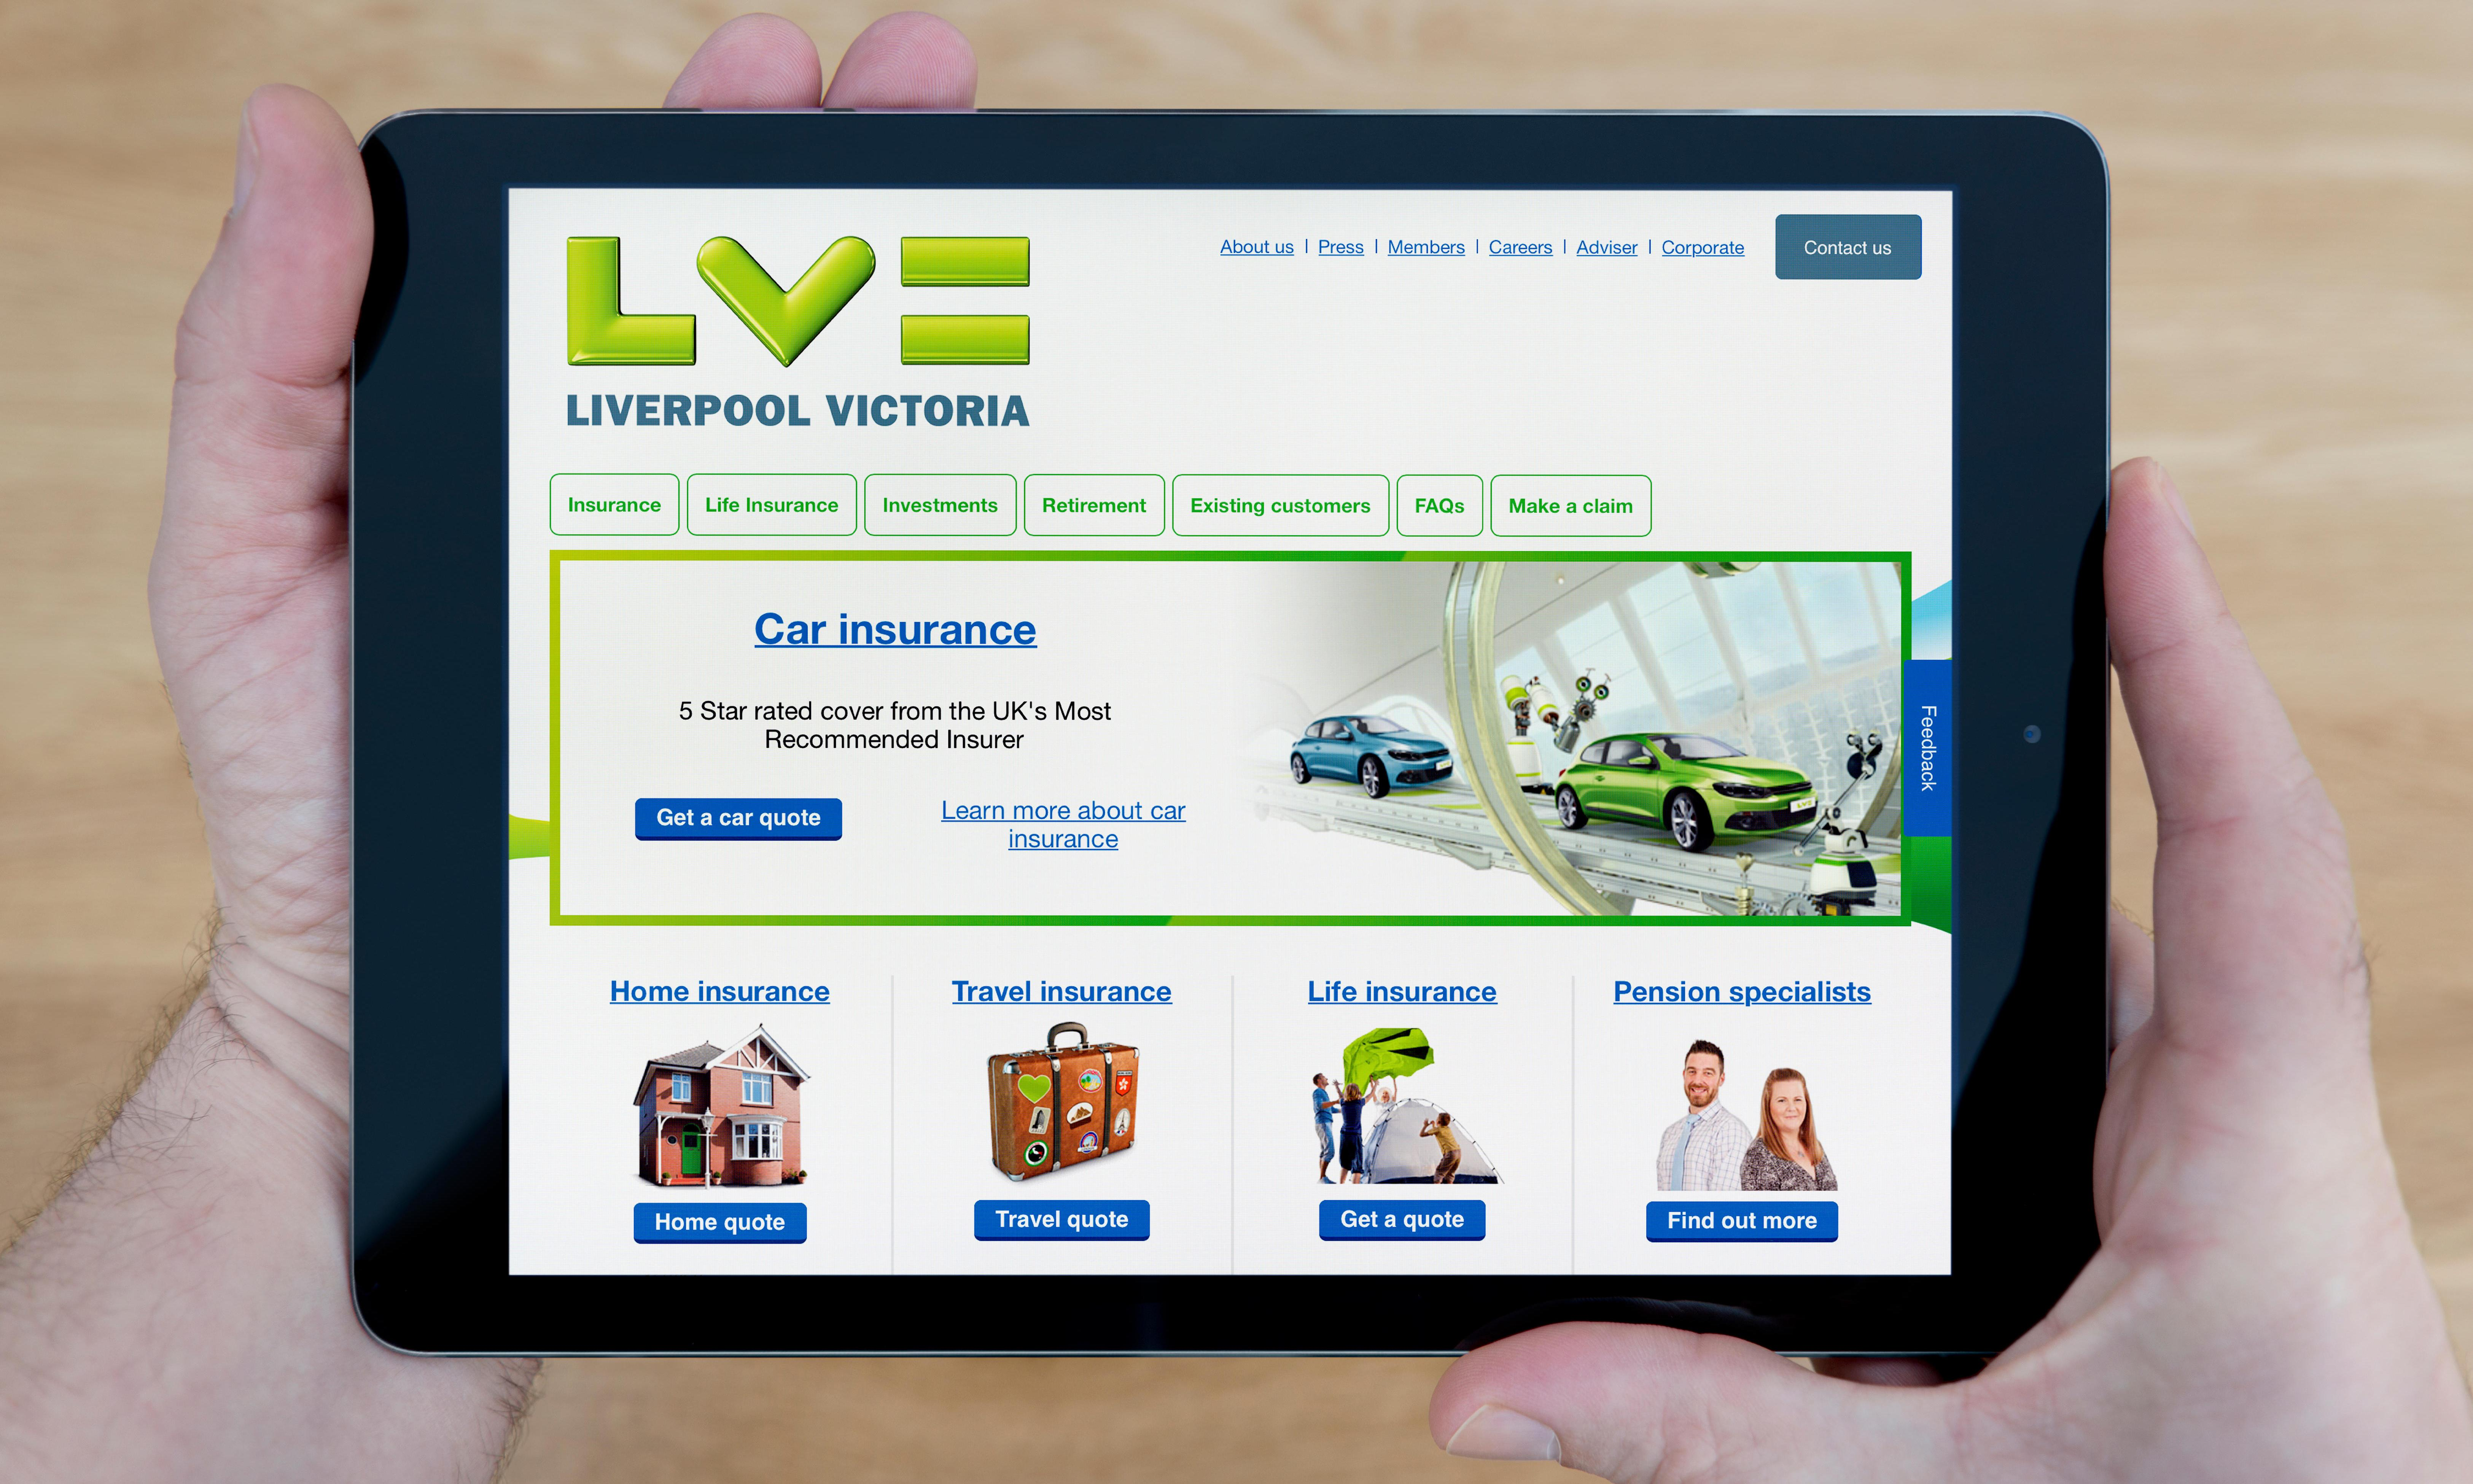 LV= shows the perils of late renewal of your car insurance